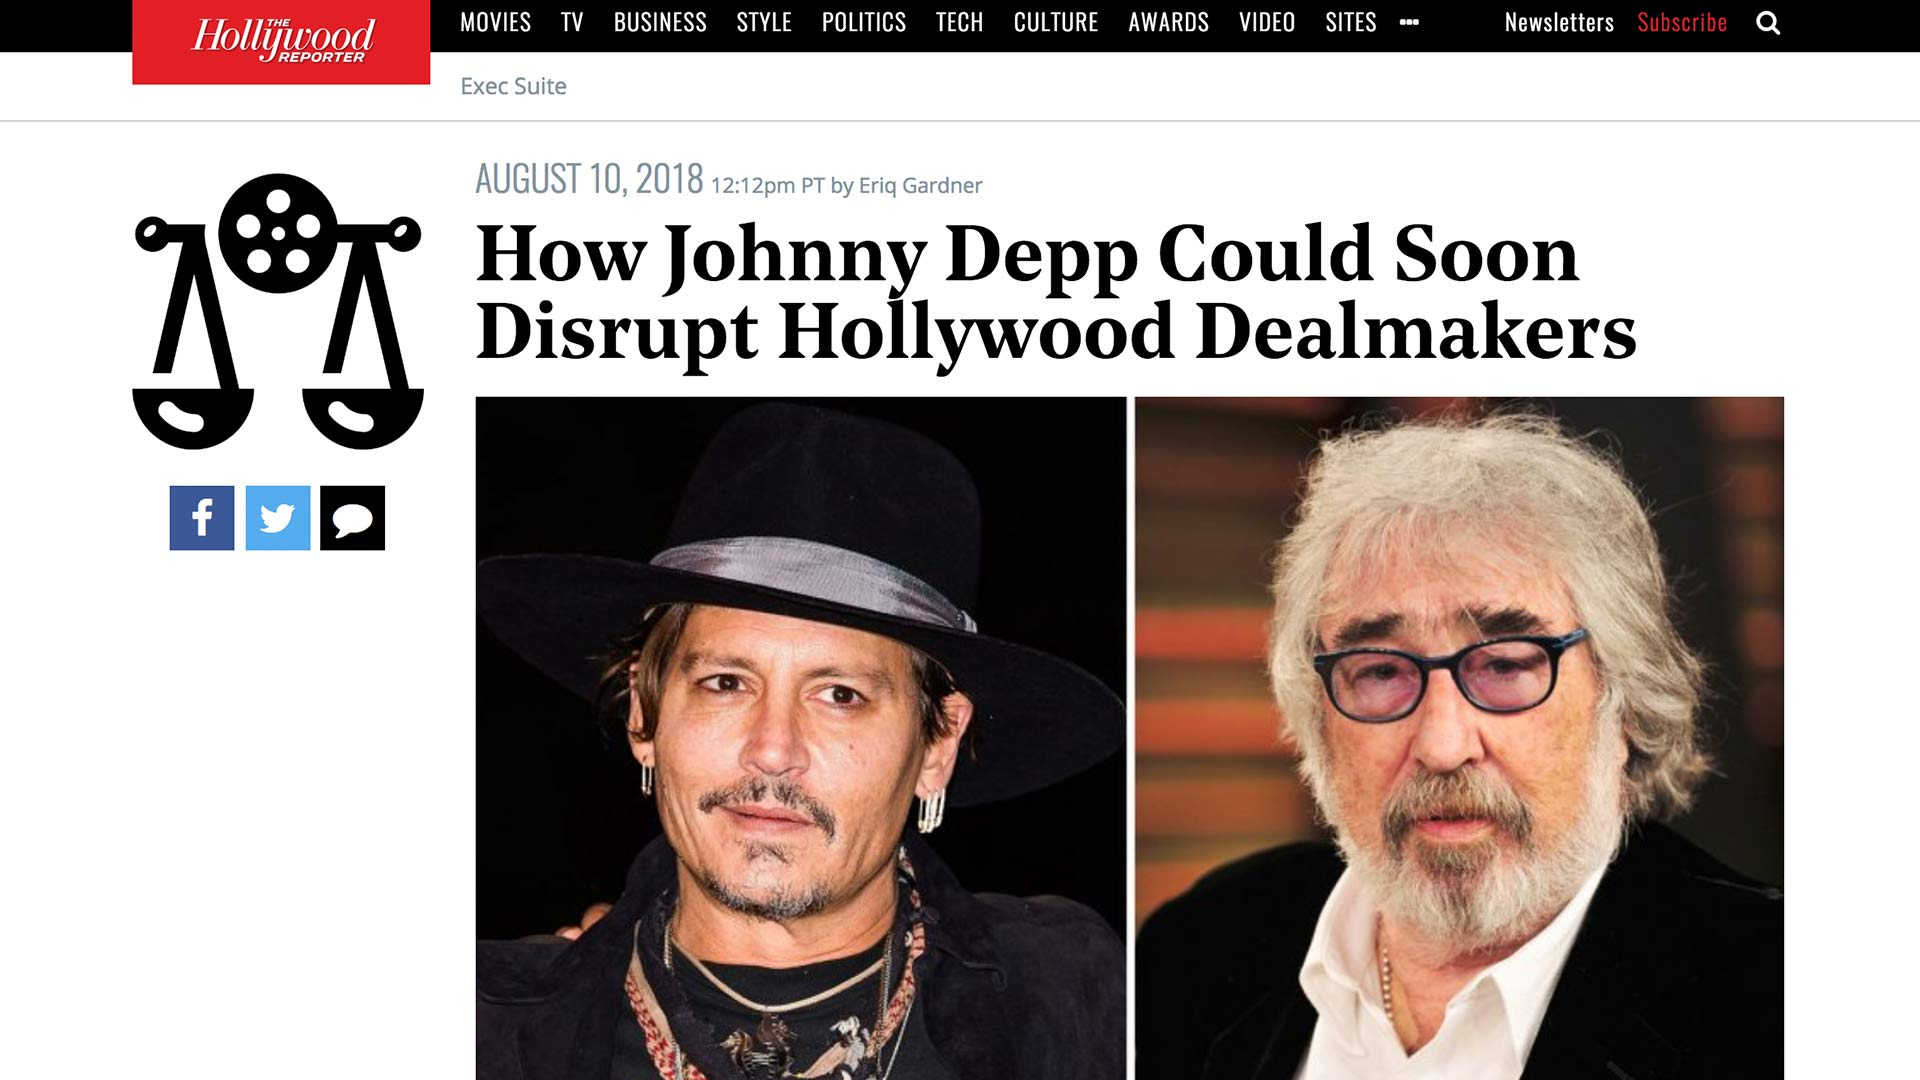 Fairness Rocks News How Johnny Depp Could Soon Disrupt Hollywood Dealmakers